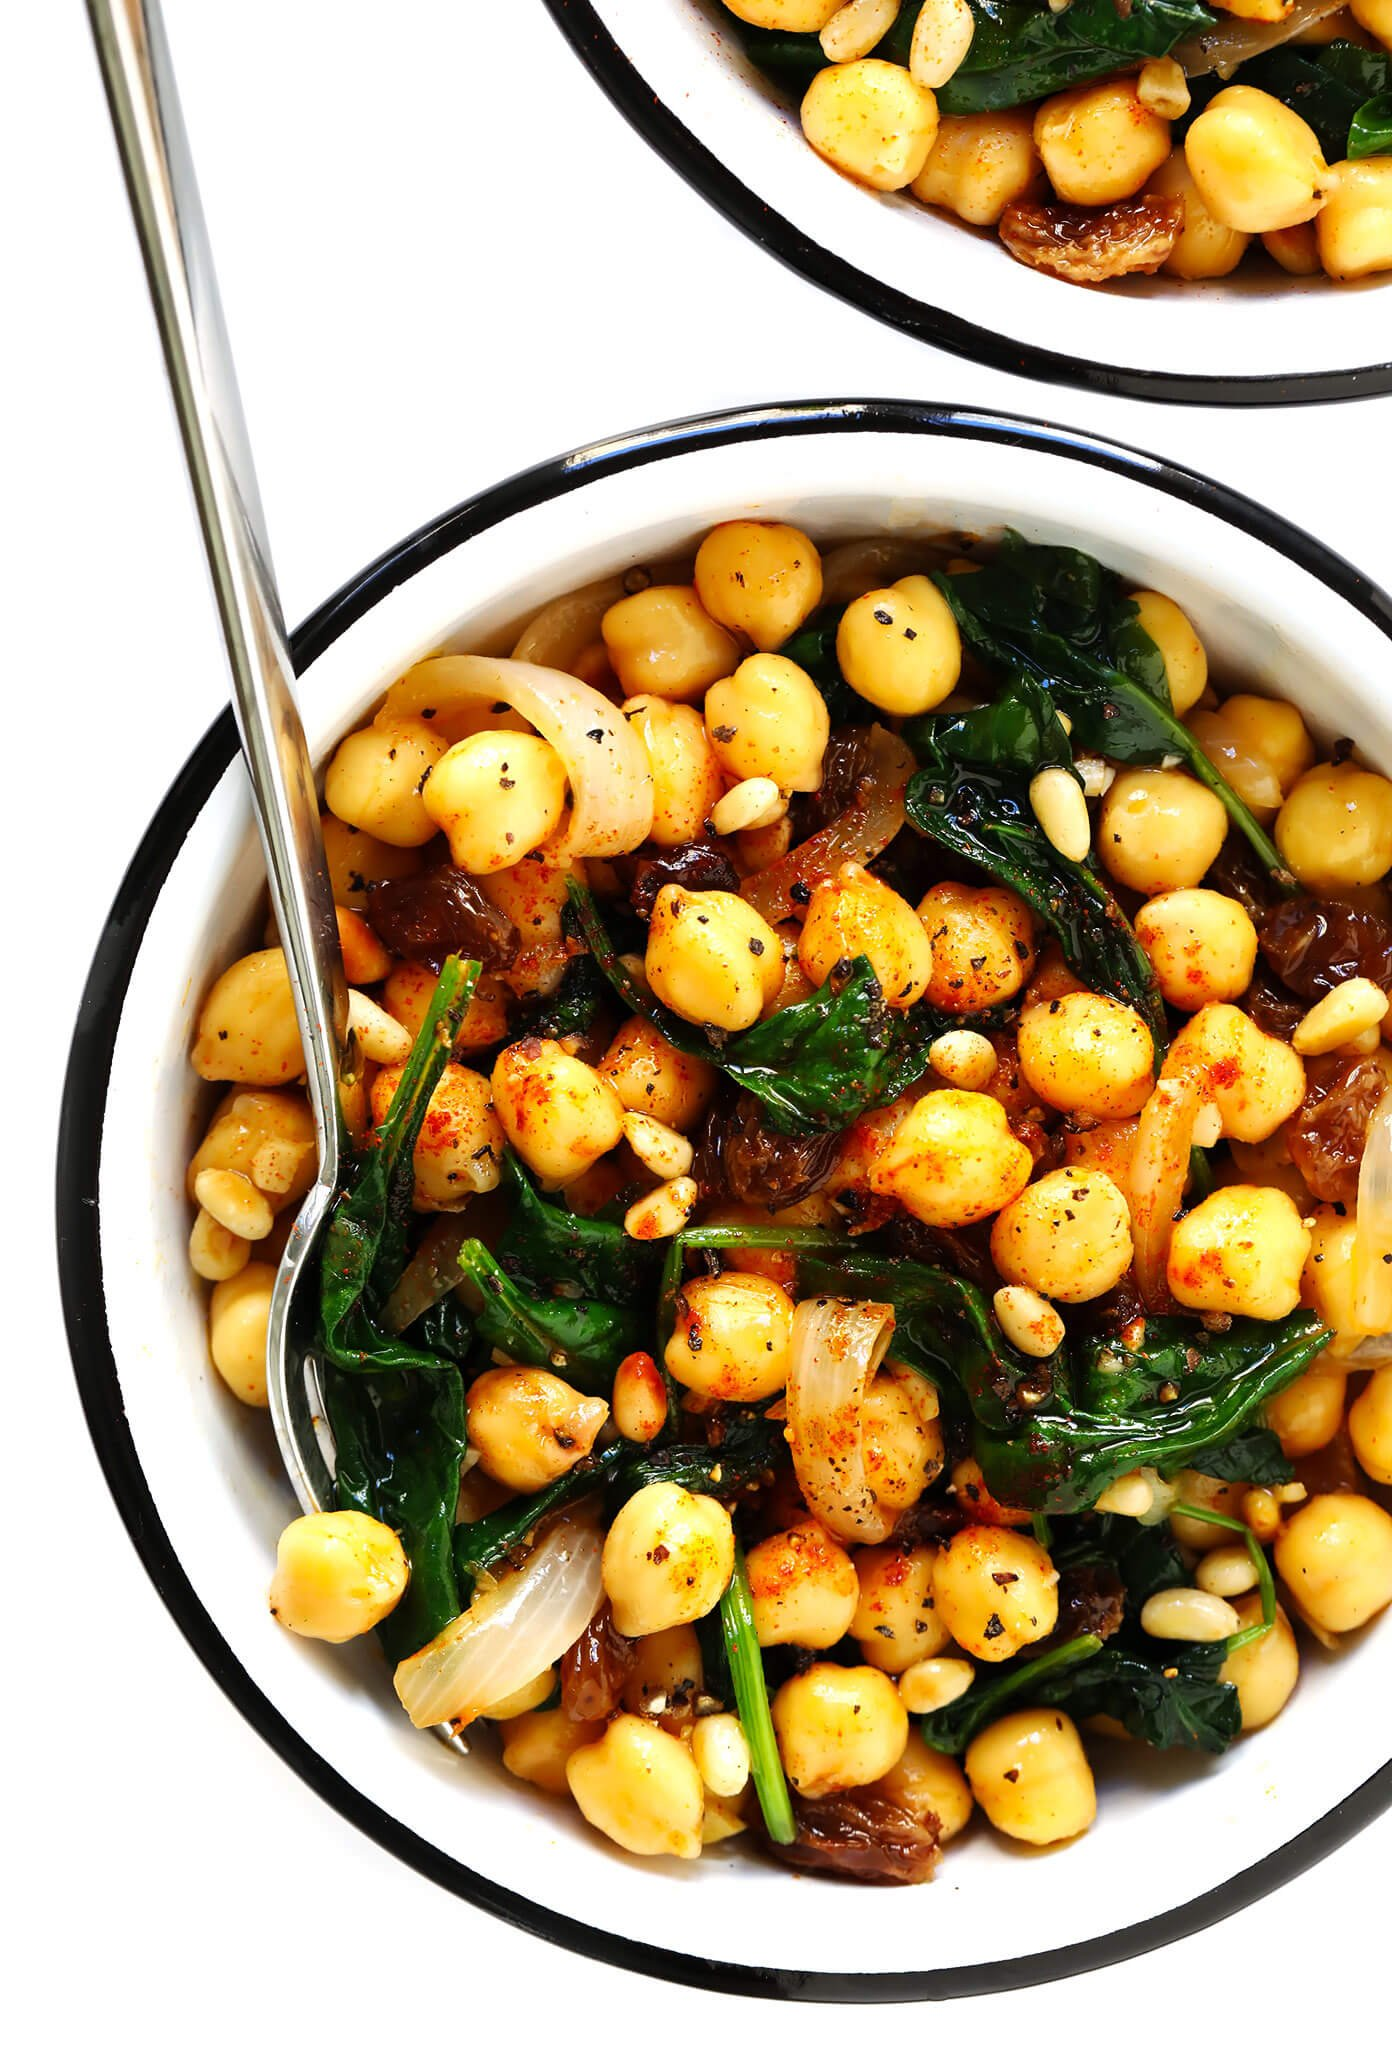 Spanish Garbanzos con Espinaca (Chickpeas with Spinach)